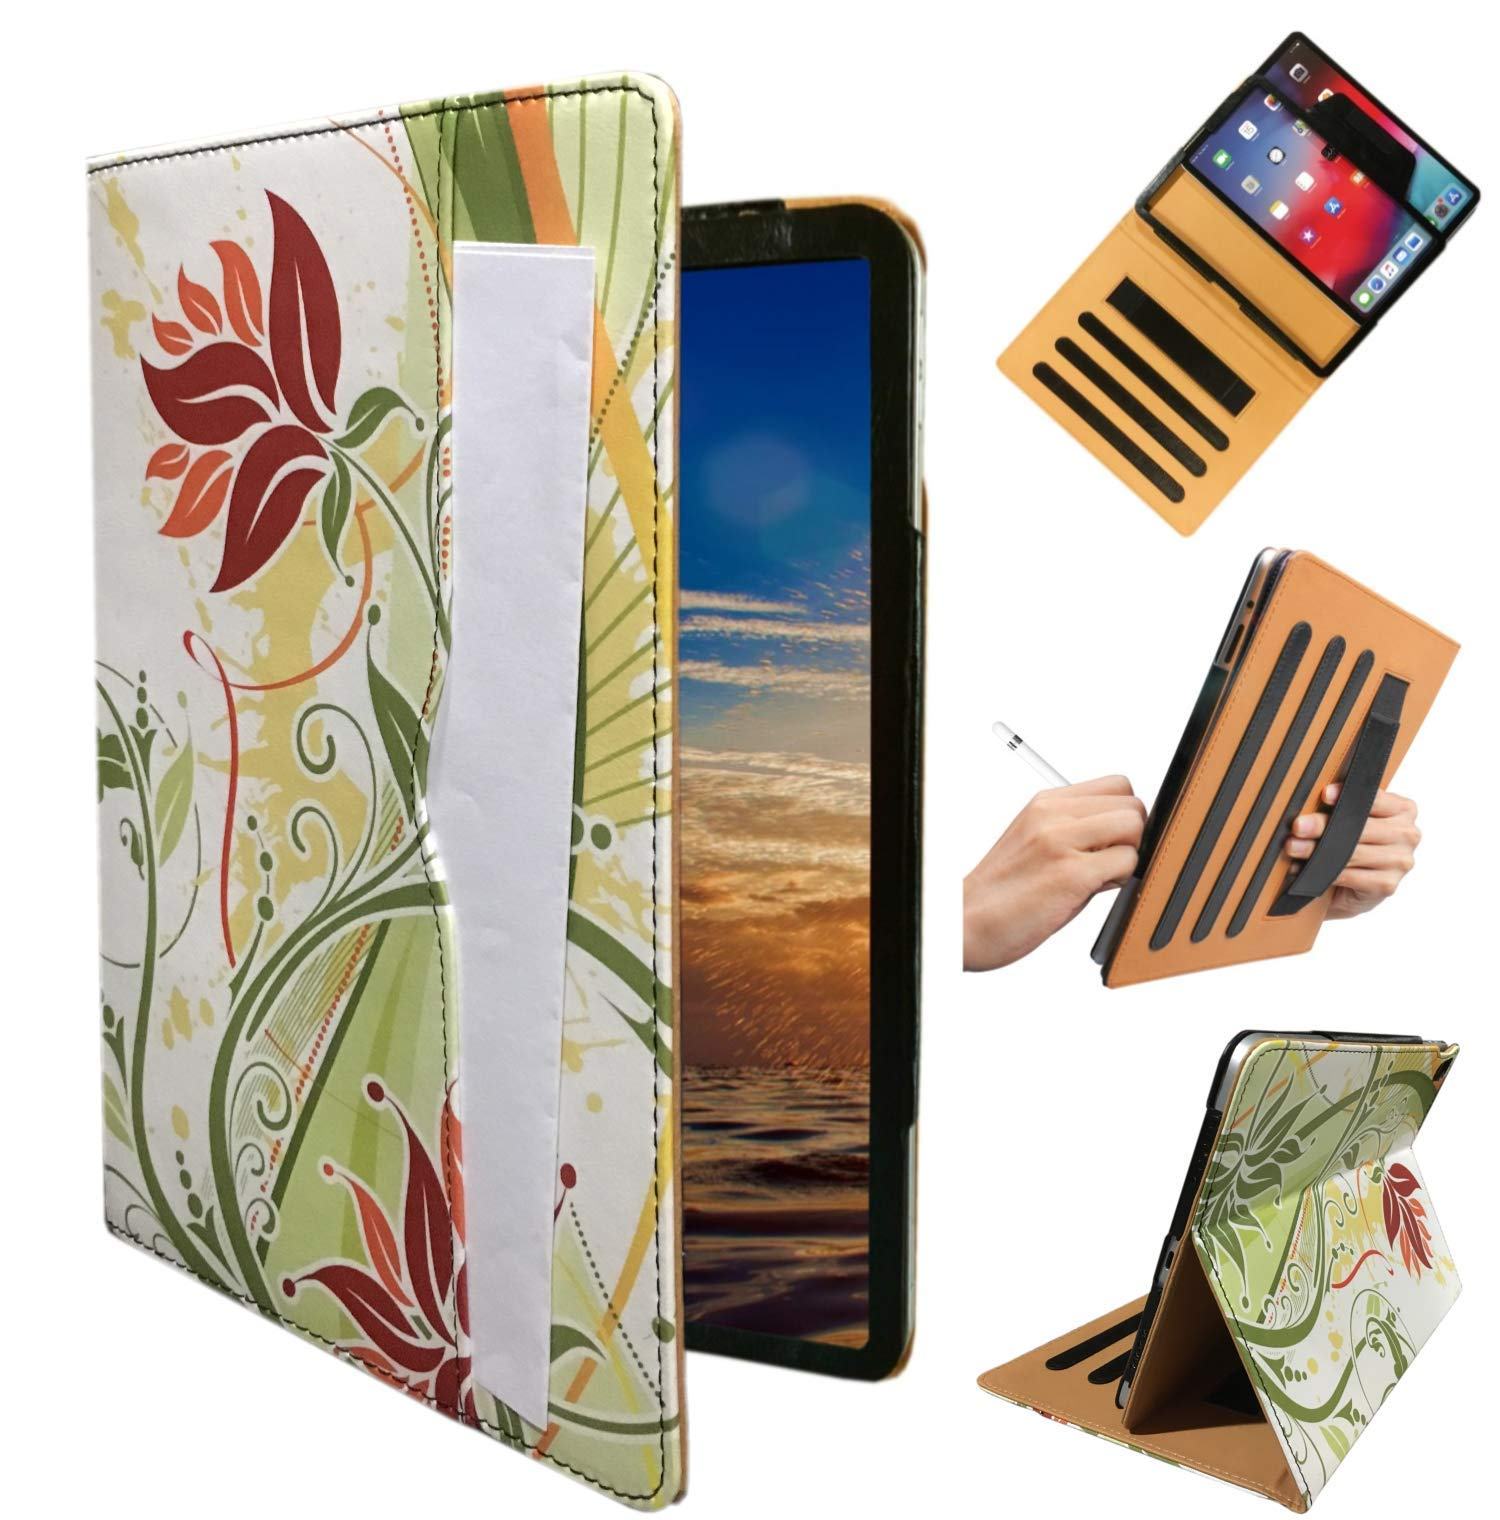 """ipad Hand Strap Case Cover for iPad 9.7"""" 5th 6th Generation 2018 2017 Air 1st 2nd Md788ll/A MRJN2LL/A MR7F2LL/A MRJP2LL/A A1474 A1893 A1954 A1822 A1823 with Sleep/Wake (Green Flower)"""